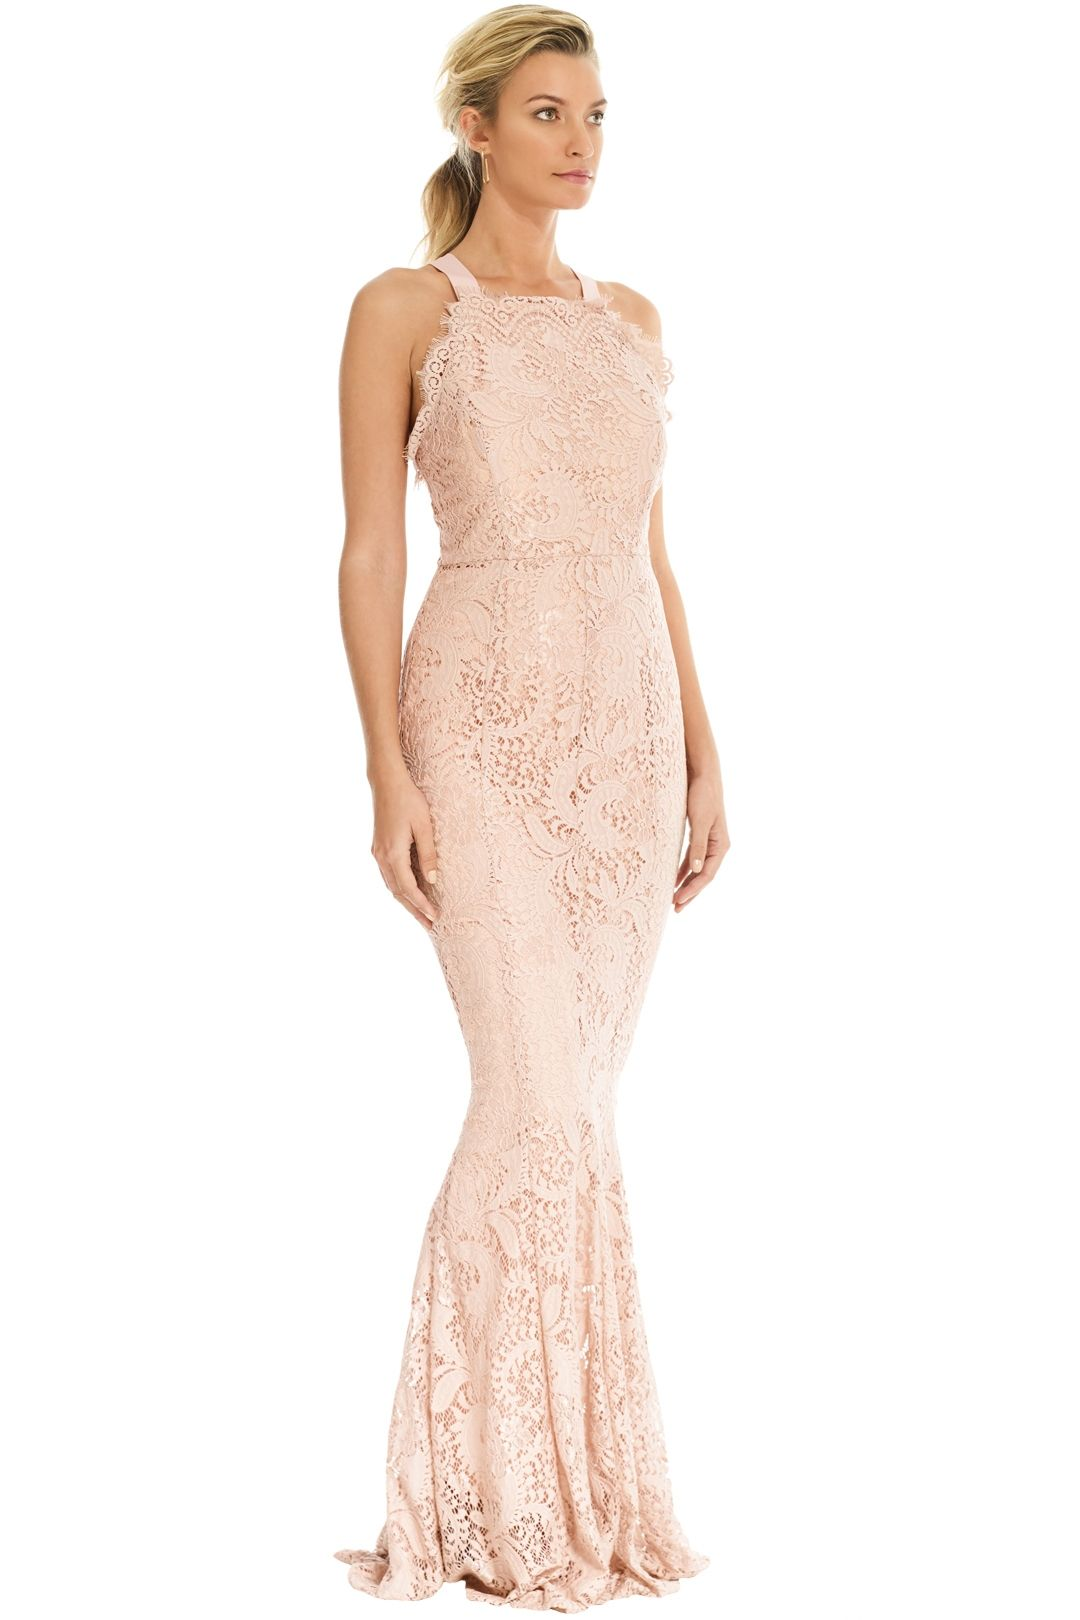 Grace and Hart - Mystic Lace Cross Back Gown - Blush - Side